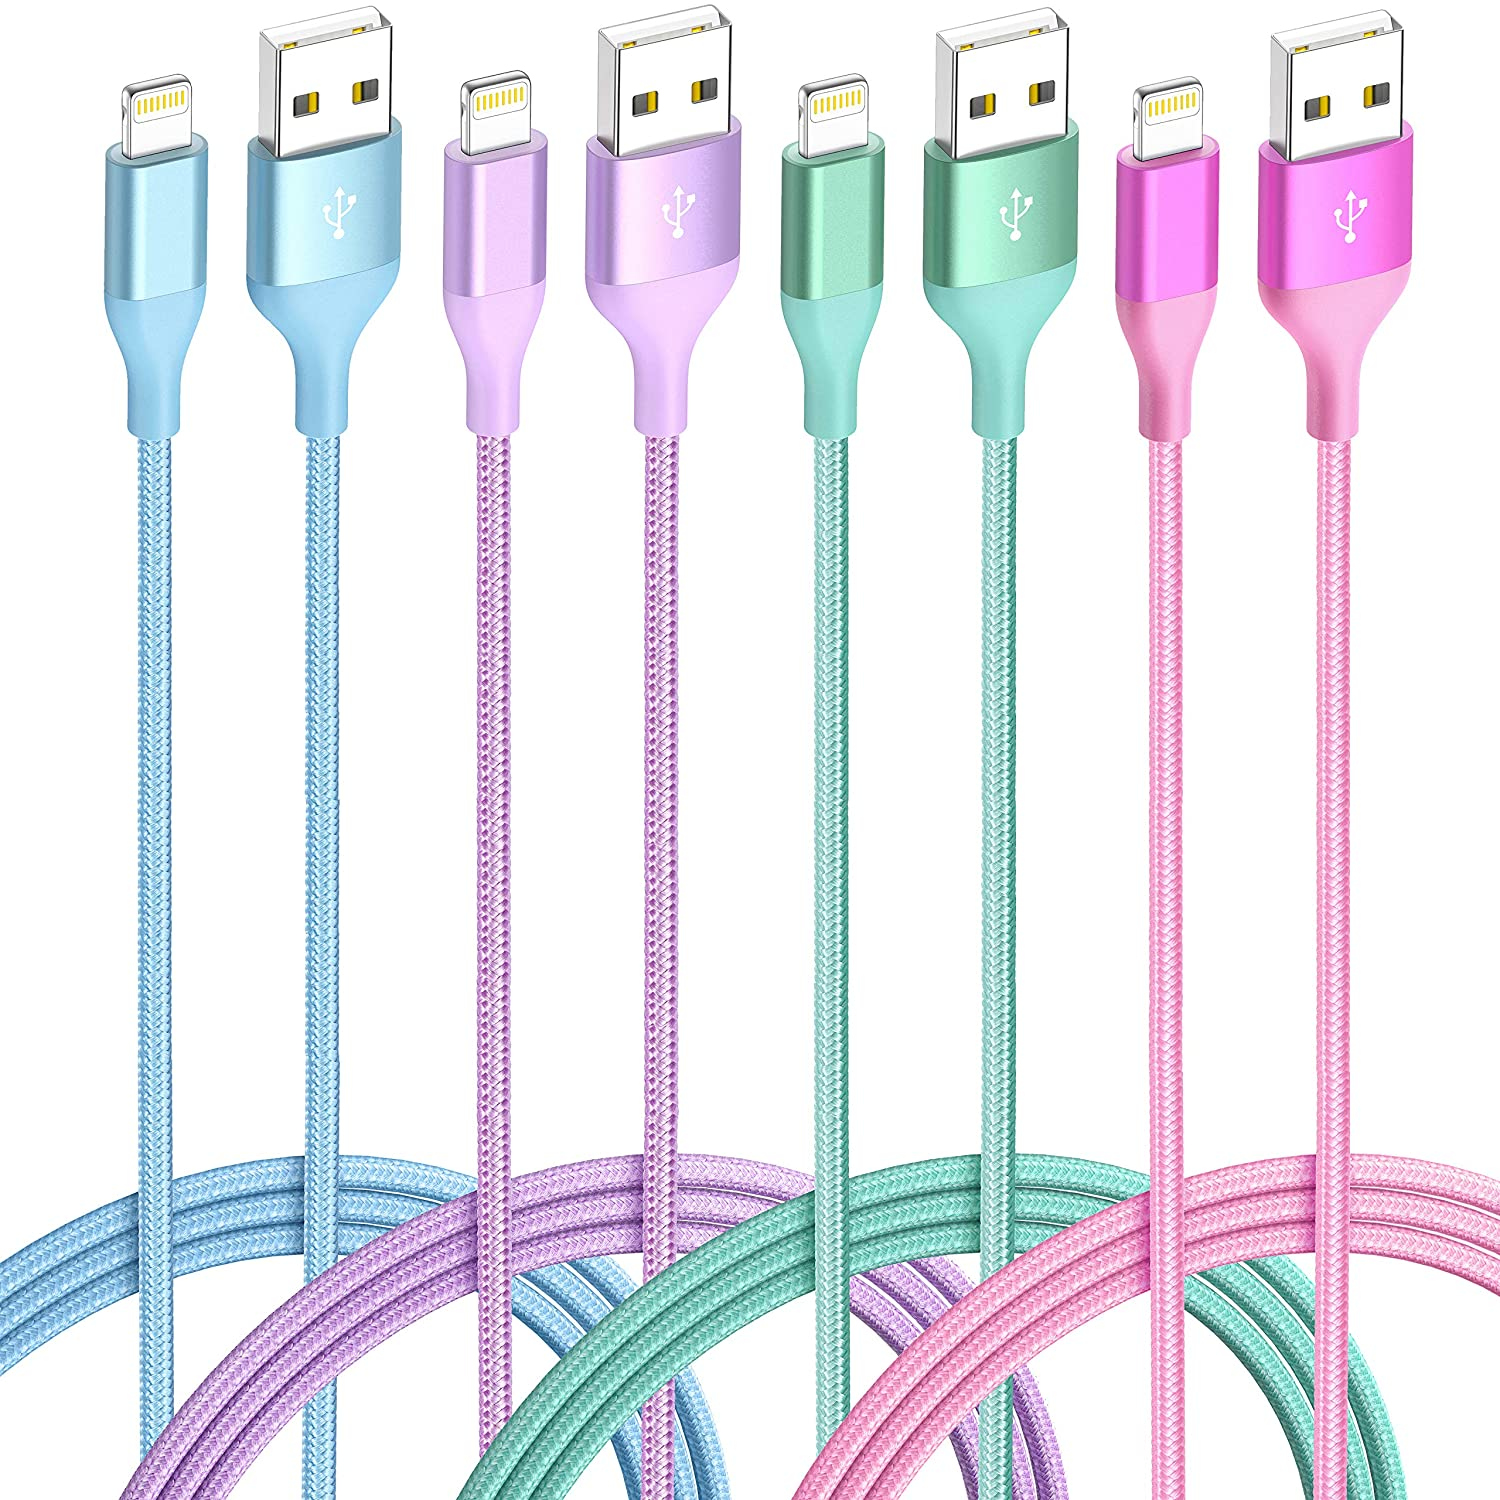 iPhone Charger Lightning Cable 4Pack(6/3/3/1ft) 4Color MFi Certified Nylon Braided Long Fast USB Cord Compatible for iPhone 11Pro MAX Xs XR X 8 7 6S 6 Plus SE 5S 5C (Blue Green+Red Purple)